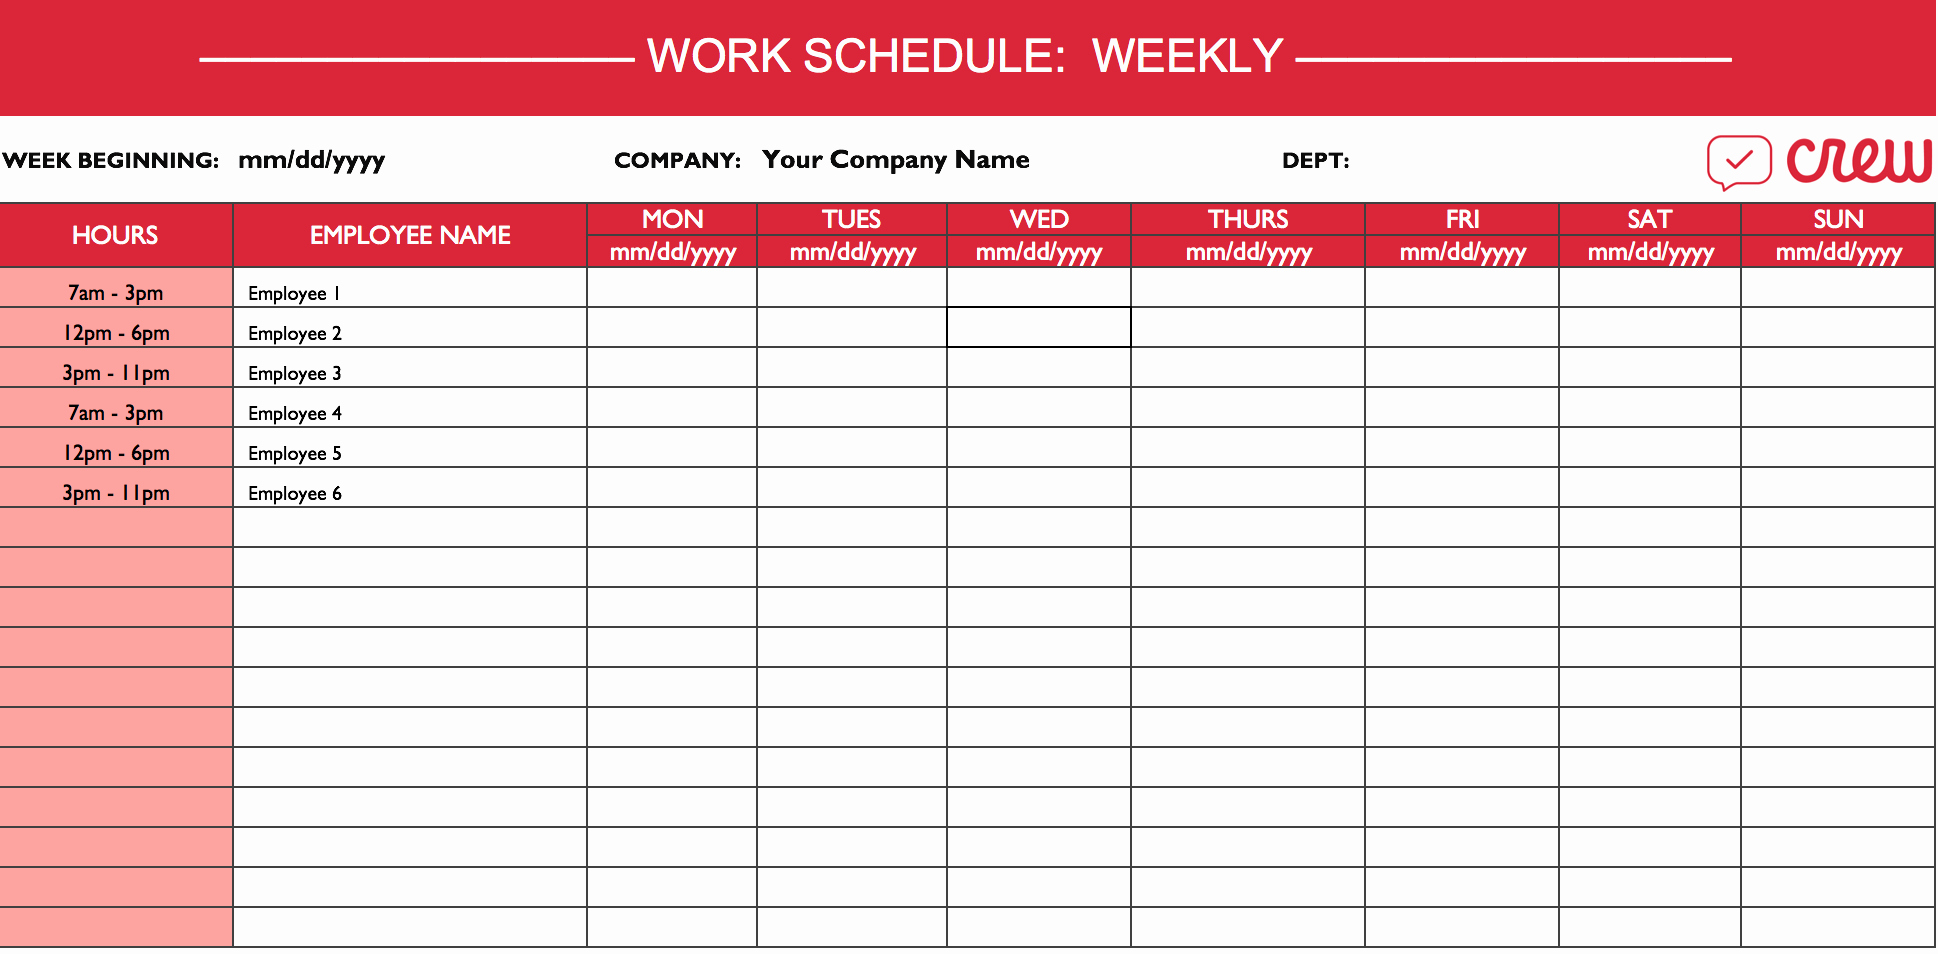 Daily Work Schedule Template Excel Luxury Weekly Work Schedule Template I Crew